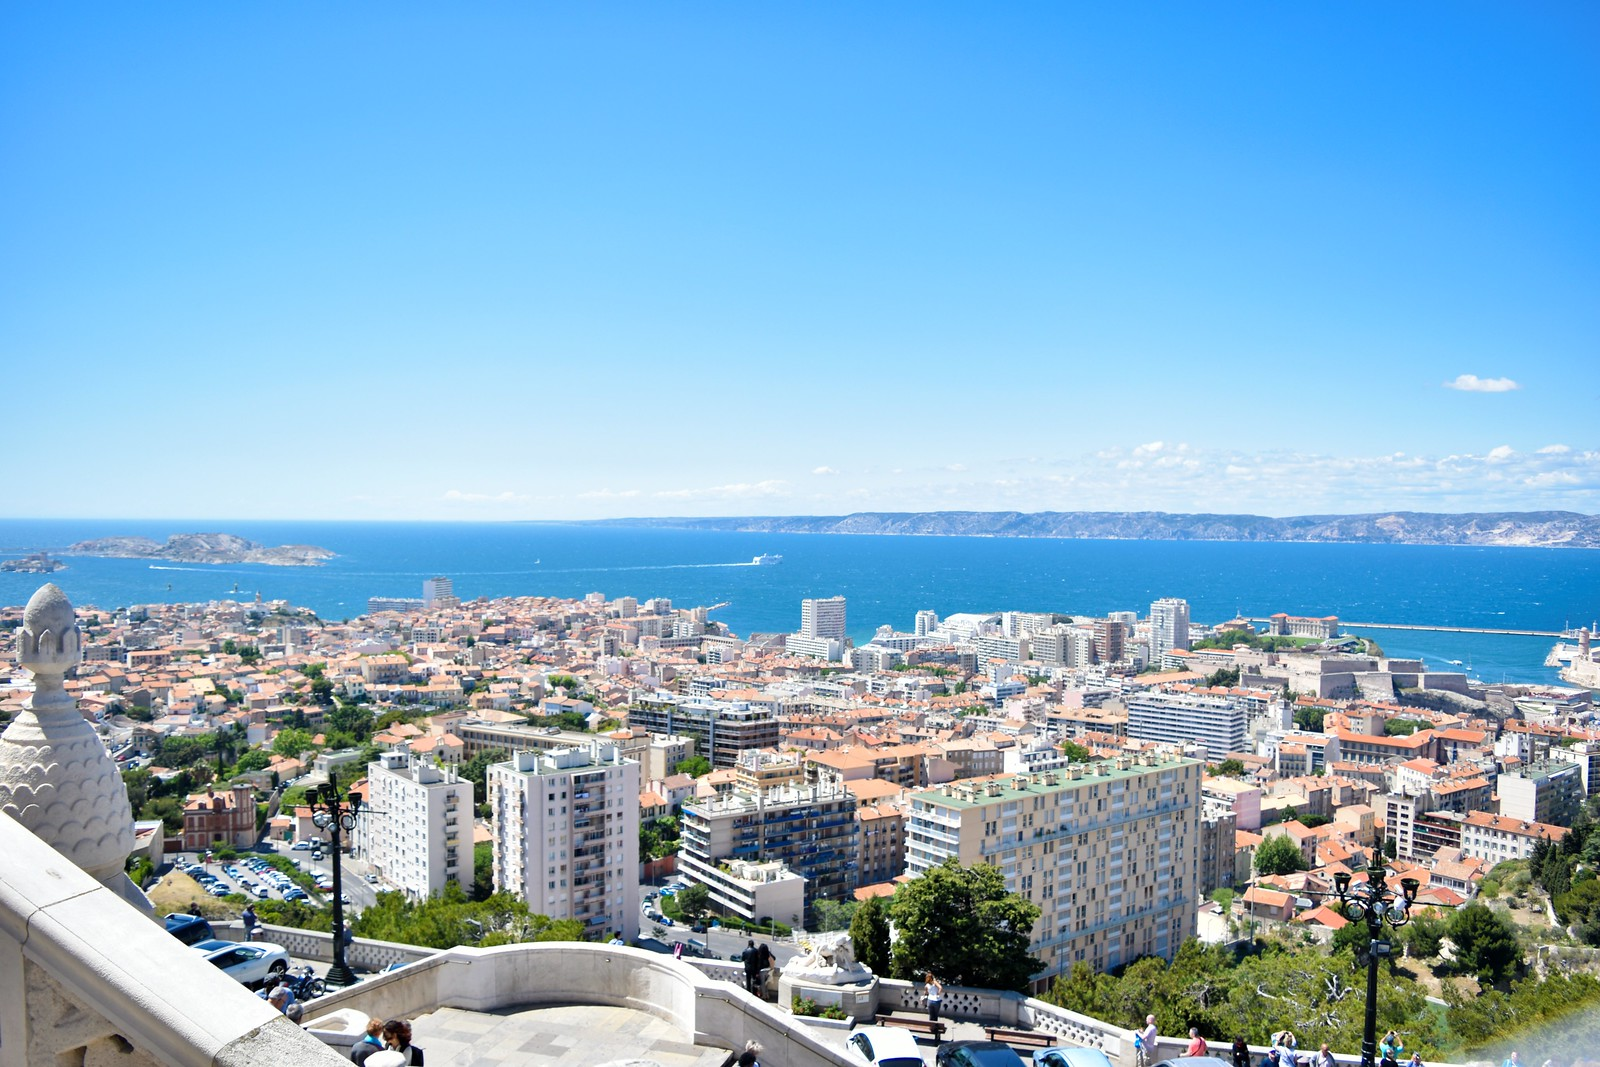 view of Marseille from the Notre Dame de la Garde